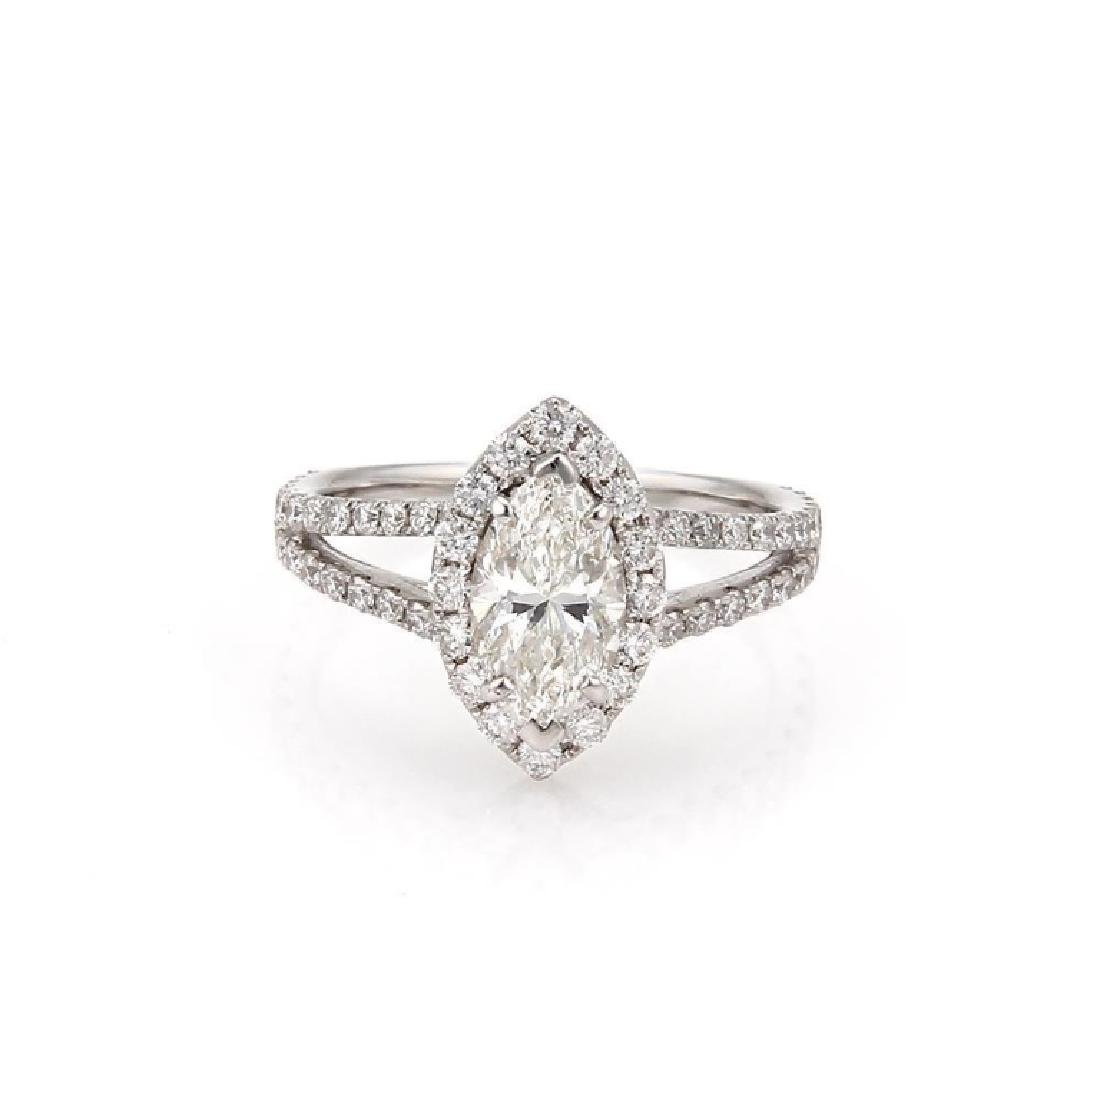 GIA Certified, 2.13 TCW Marquise Engagement Ring